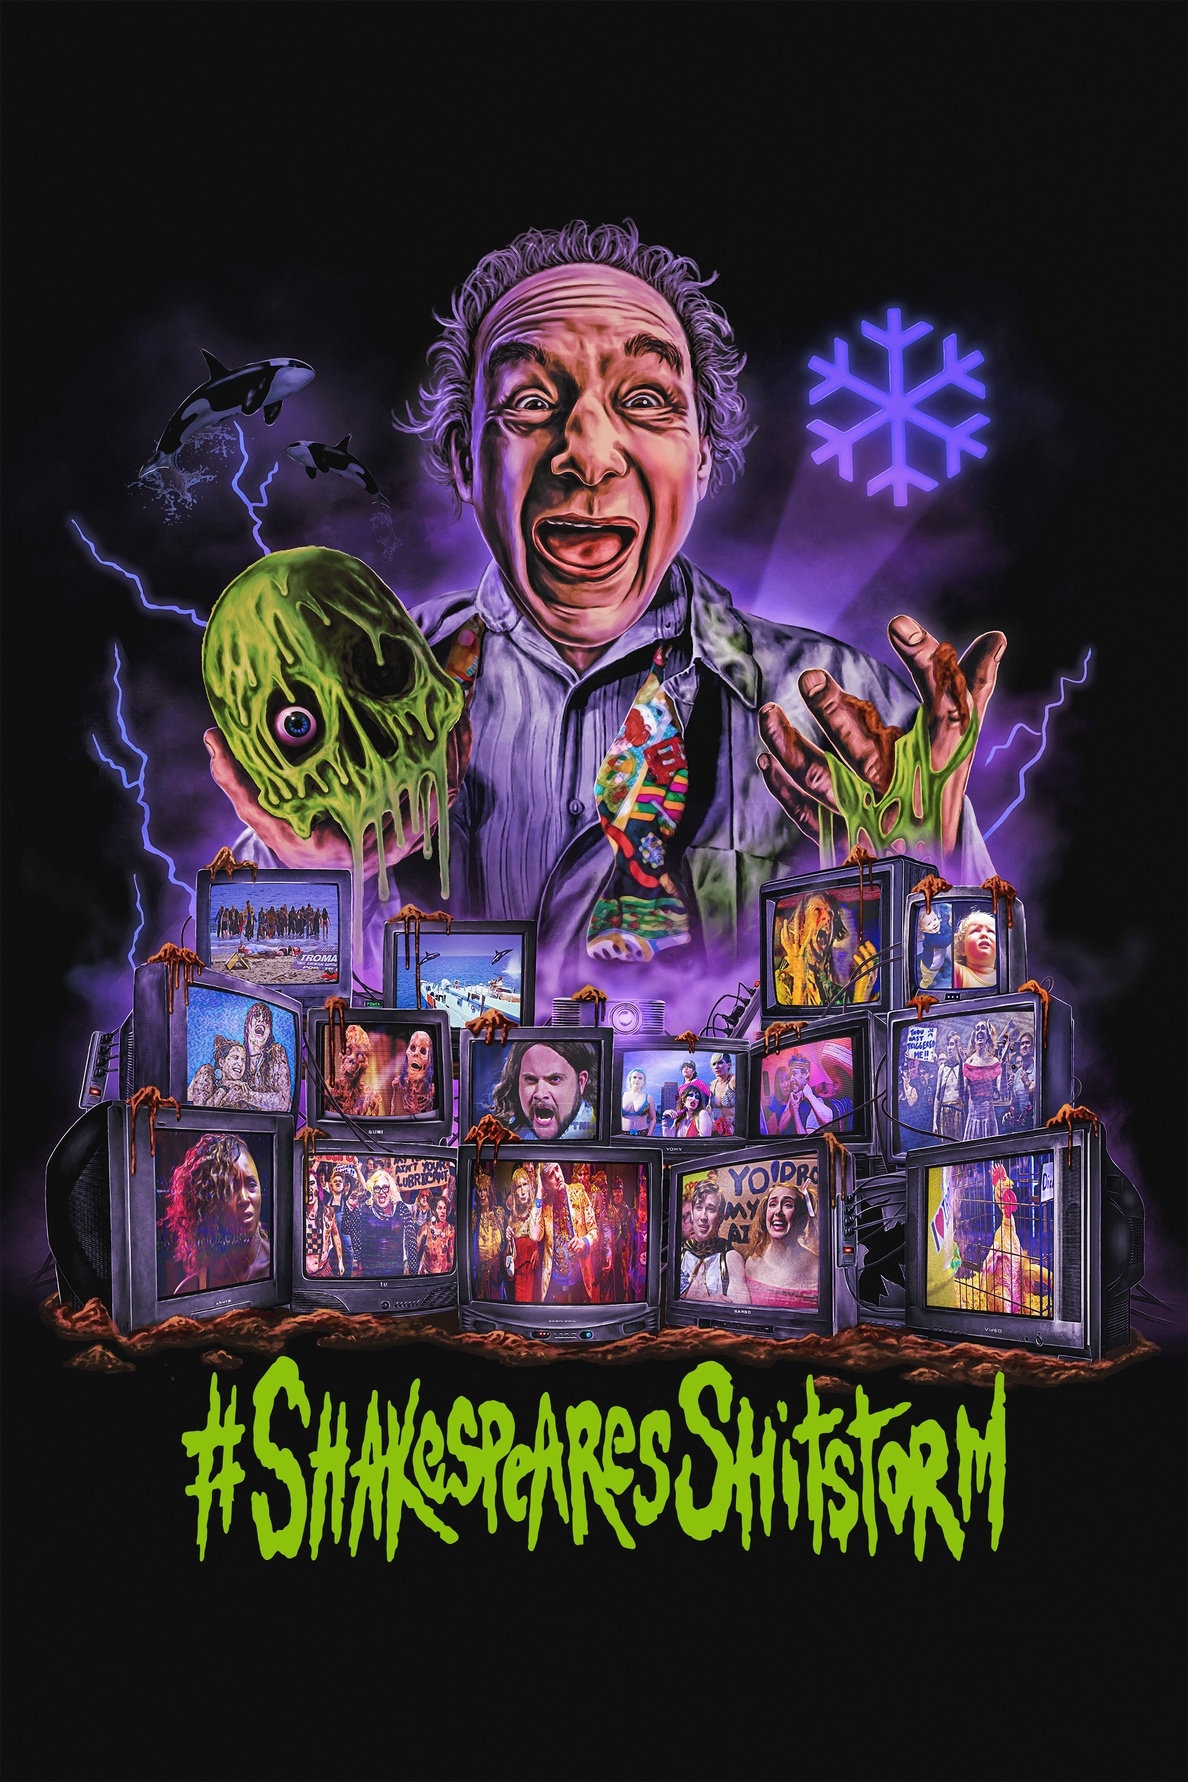 Troma Entertainment Invites You to Marché du Film Online 2020 (22-26 June) to discuss the Troma library, Including Lloyd Kaufman's Shakespeare's Shitstorm